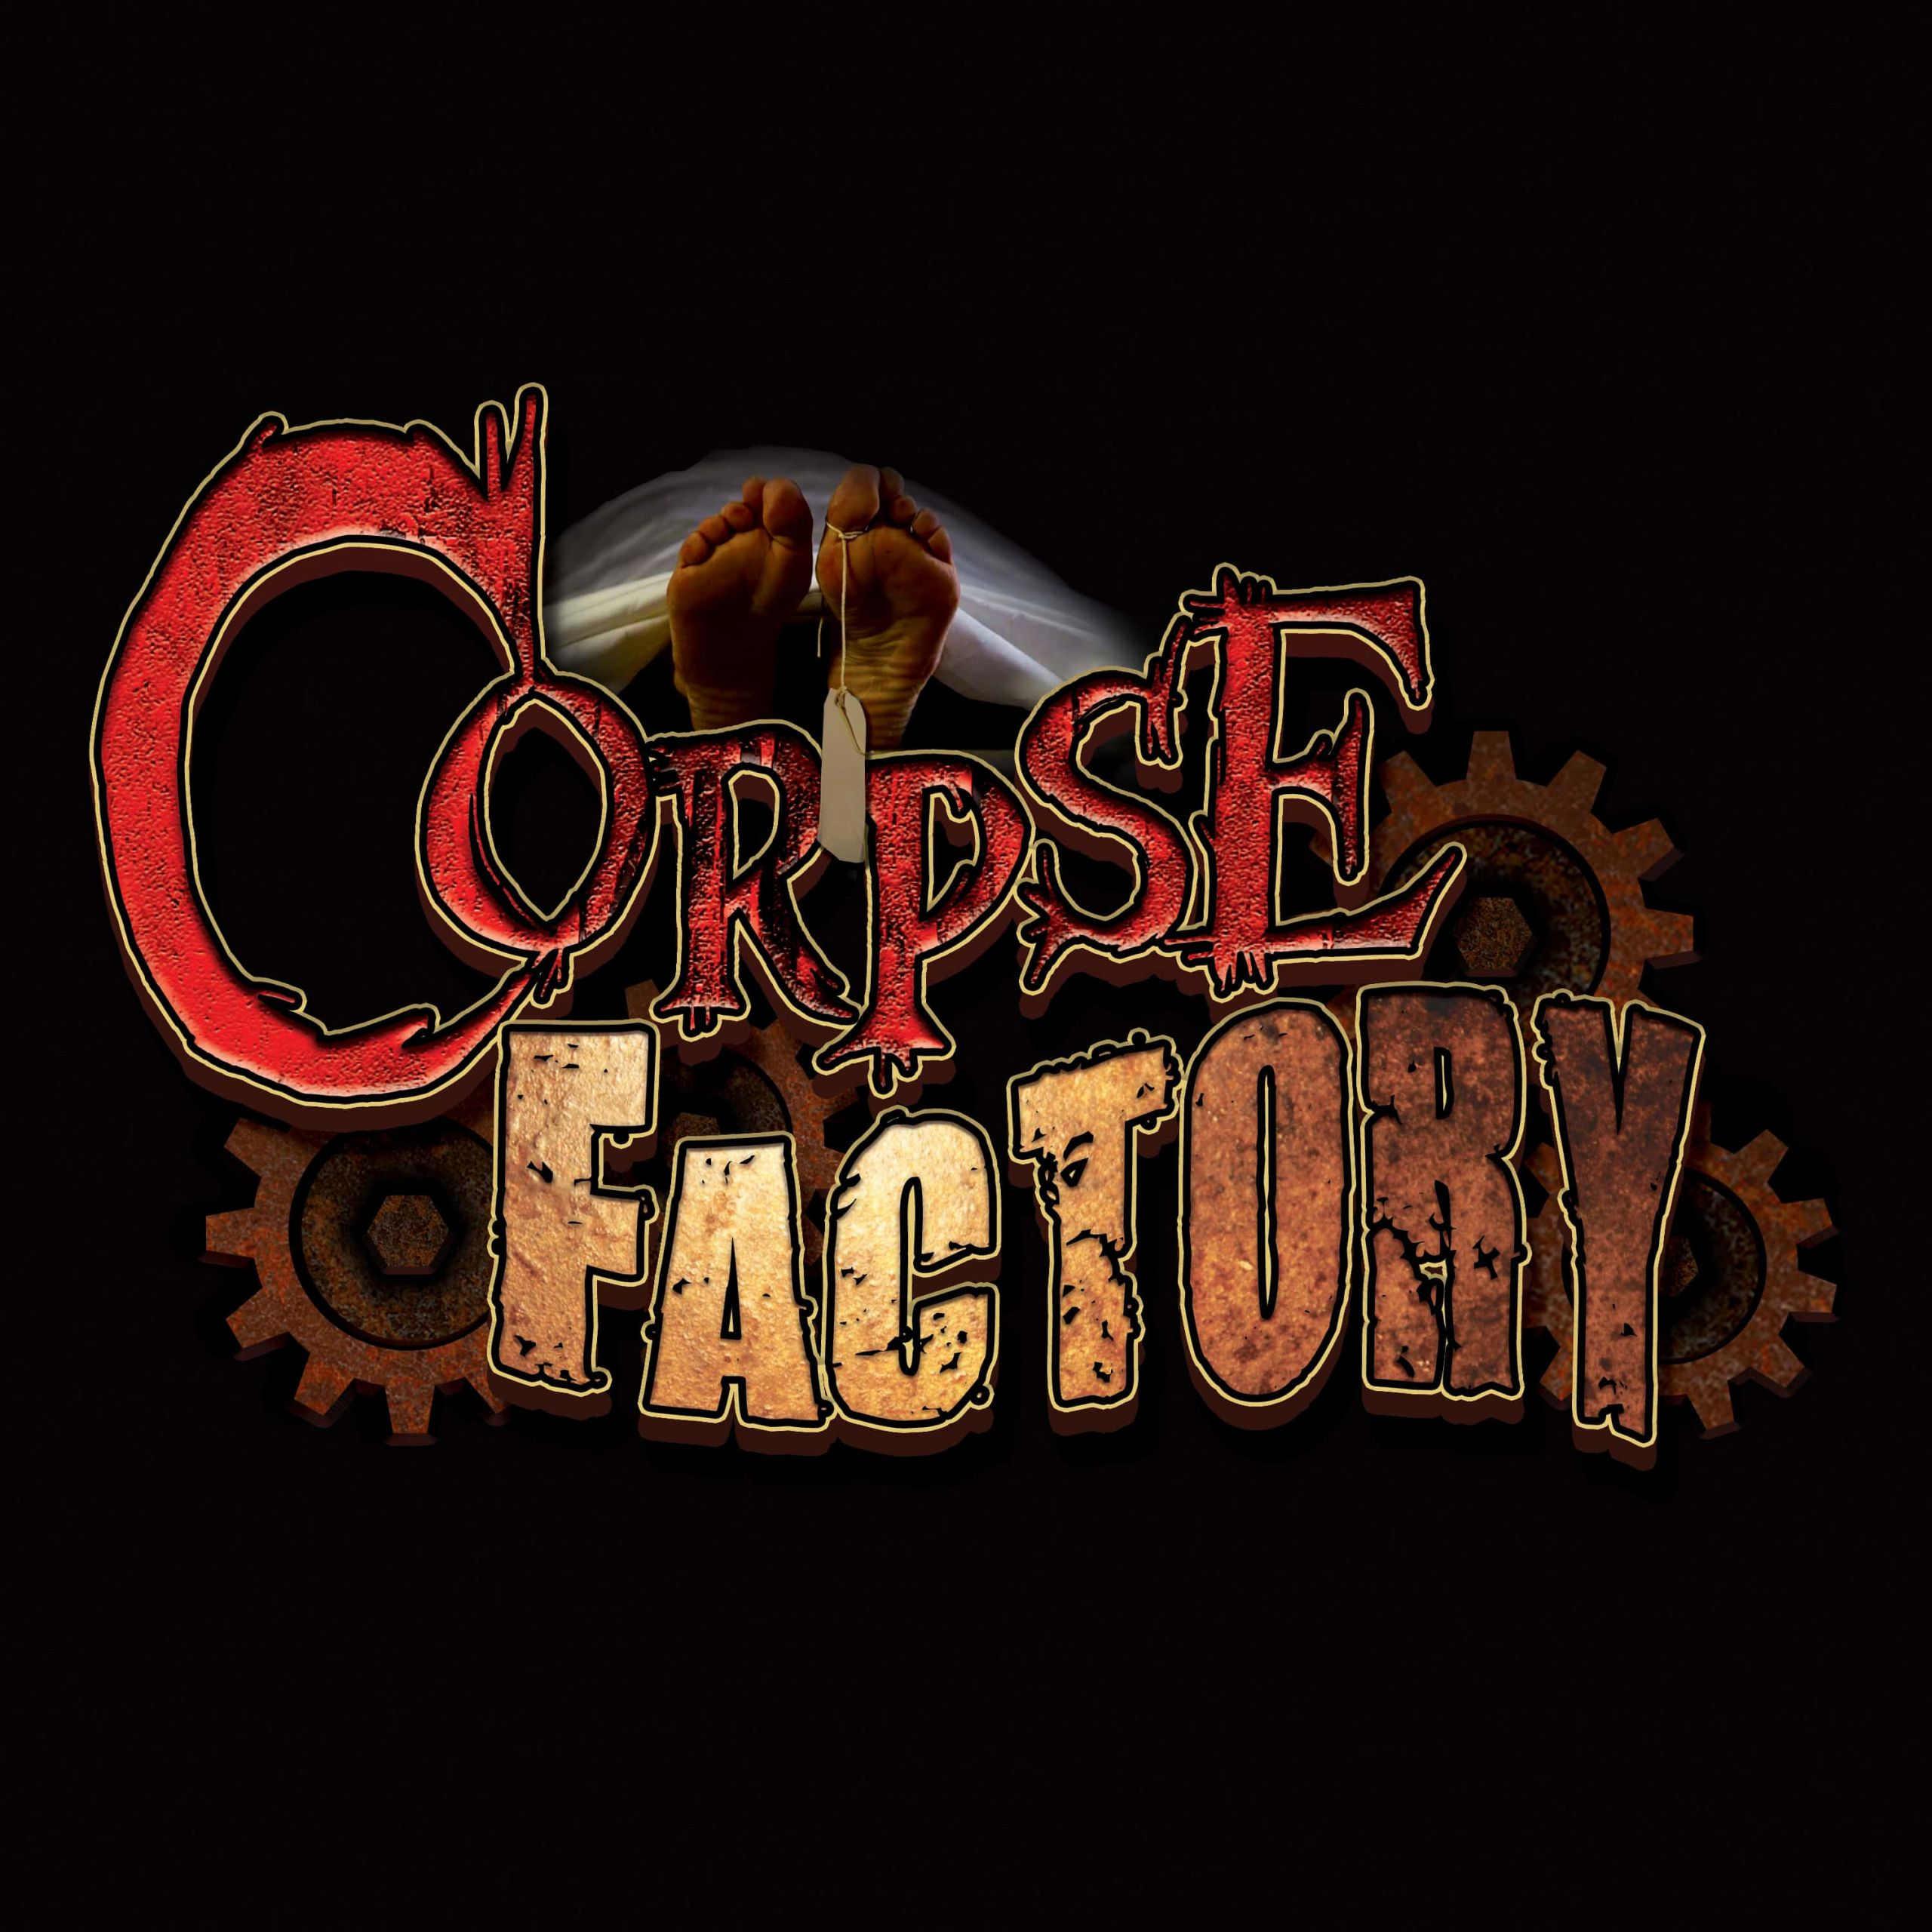 Corpse Factory